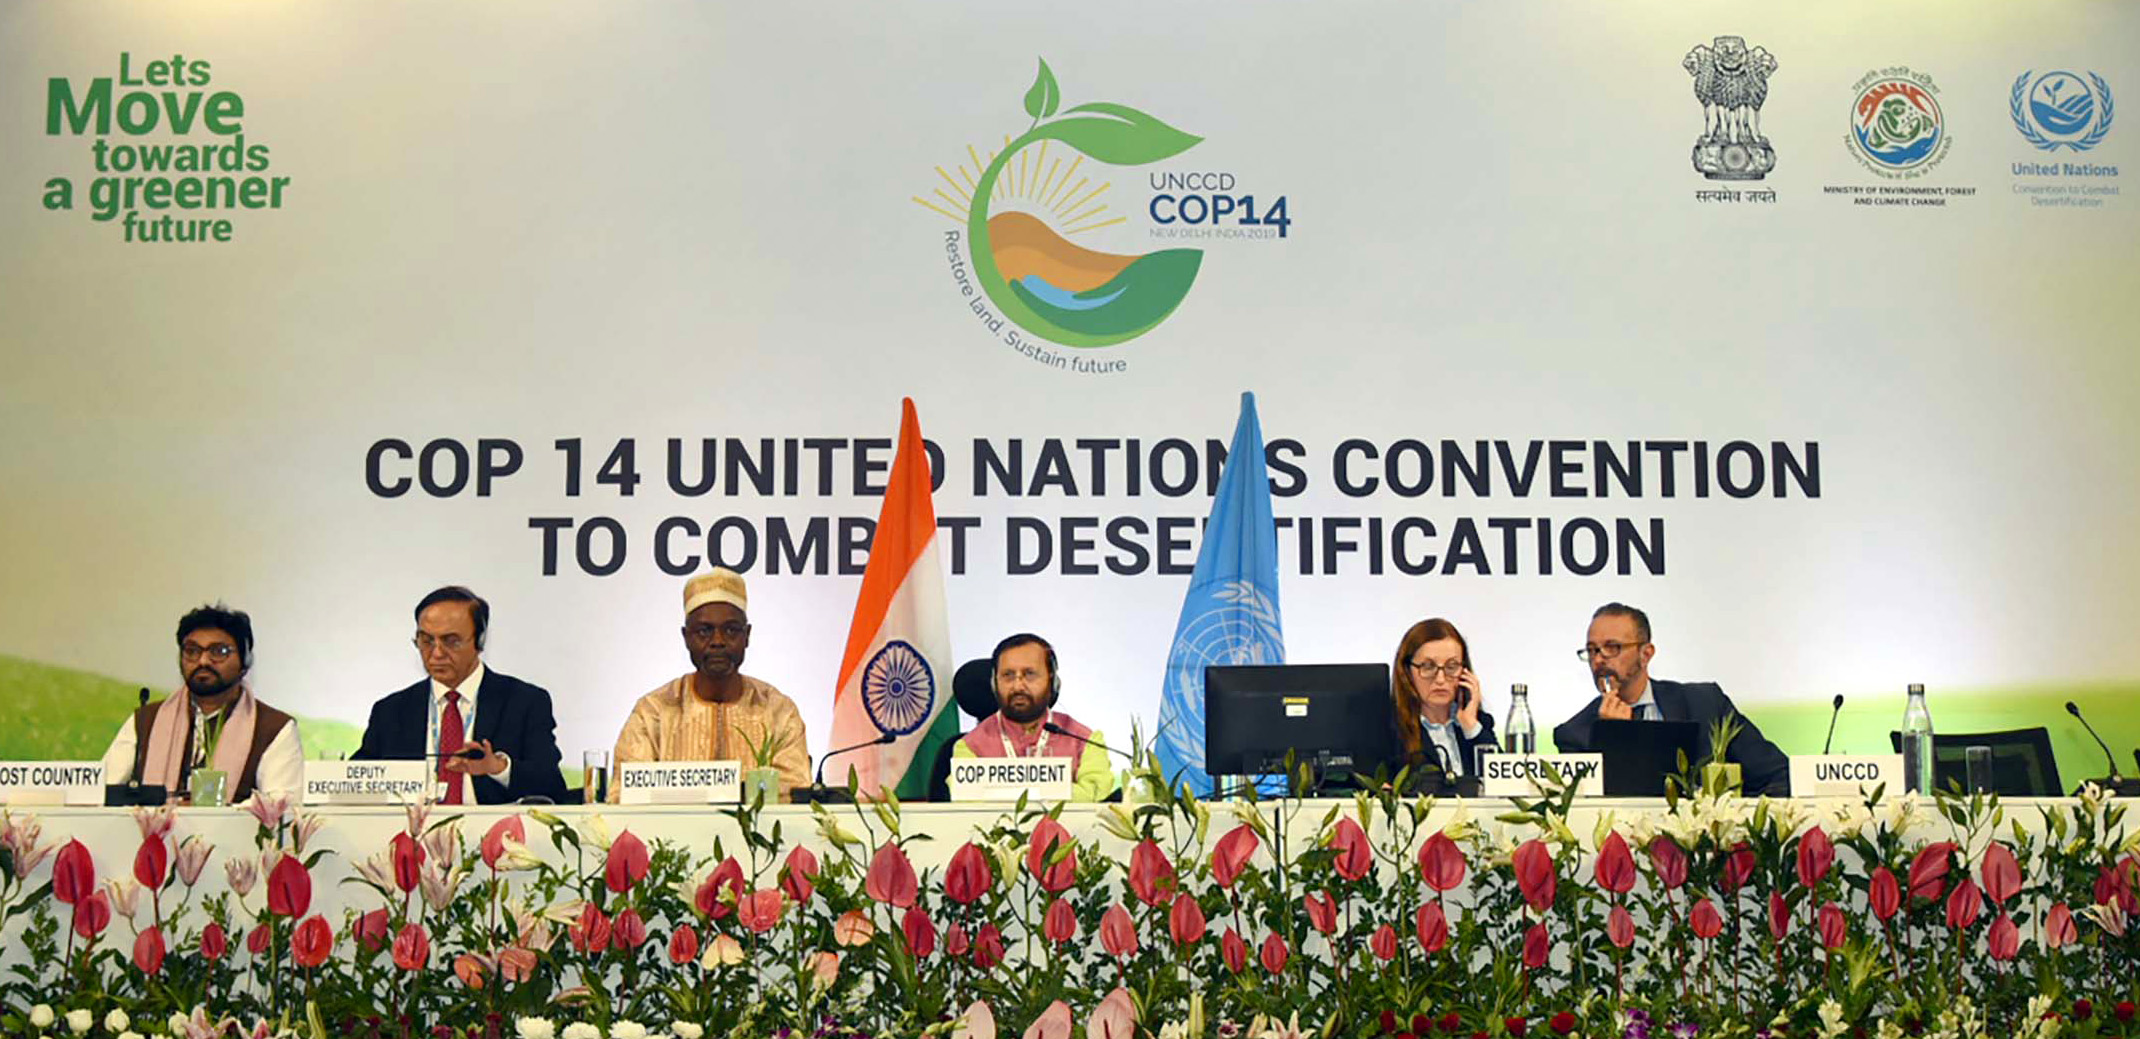 India hosts the fourteenth session of the Conference of the Parties to the United Nations Convention <br>to Combat Desertification (COP14)